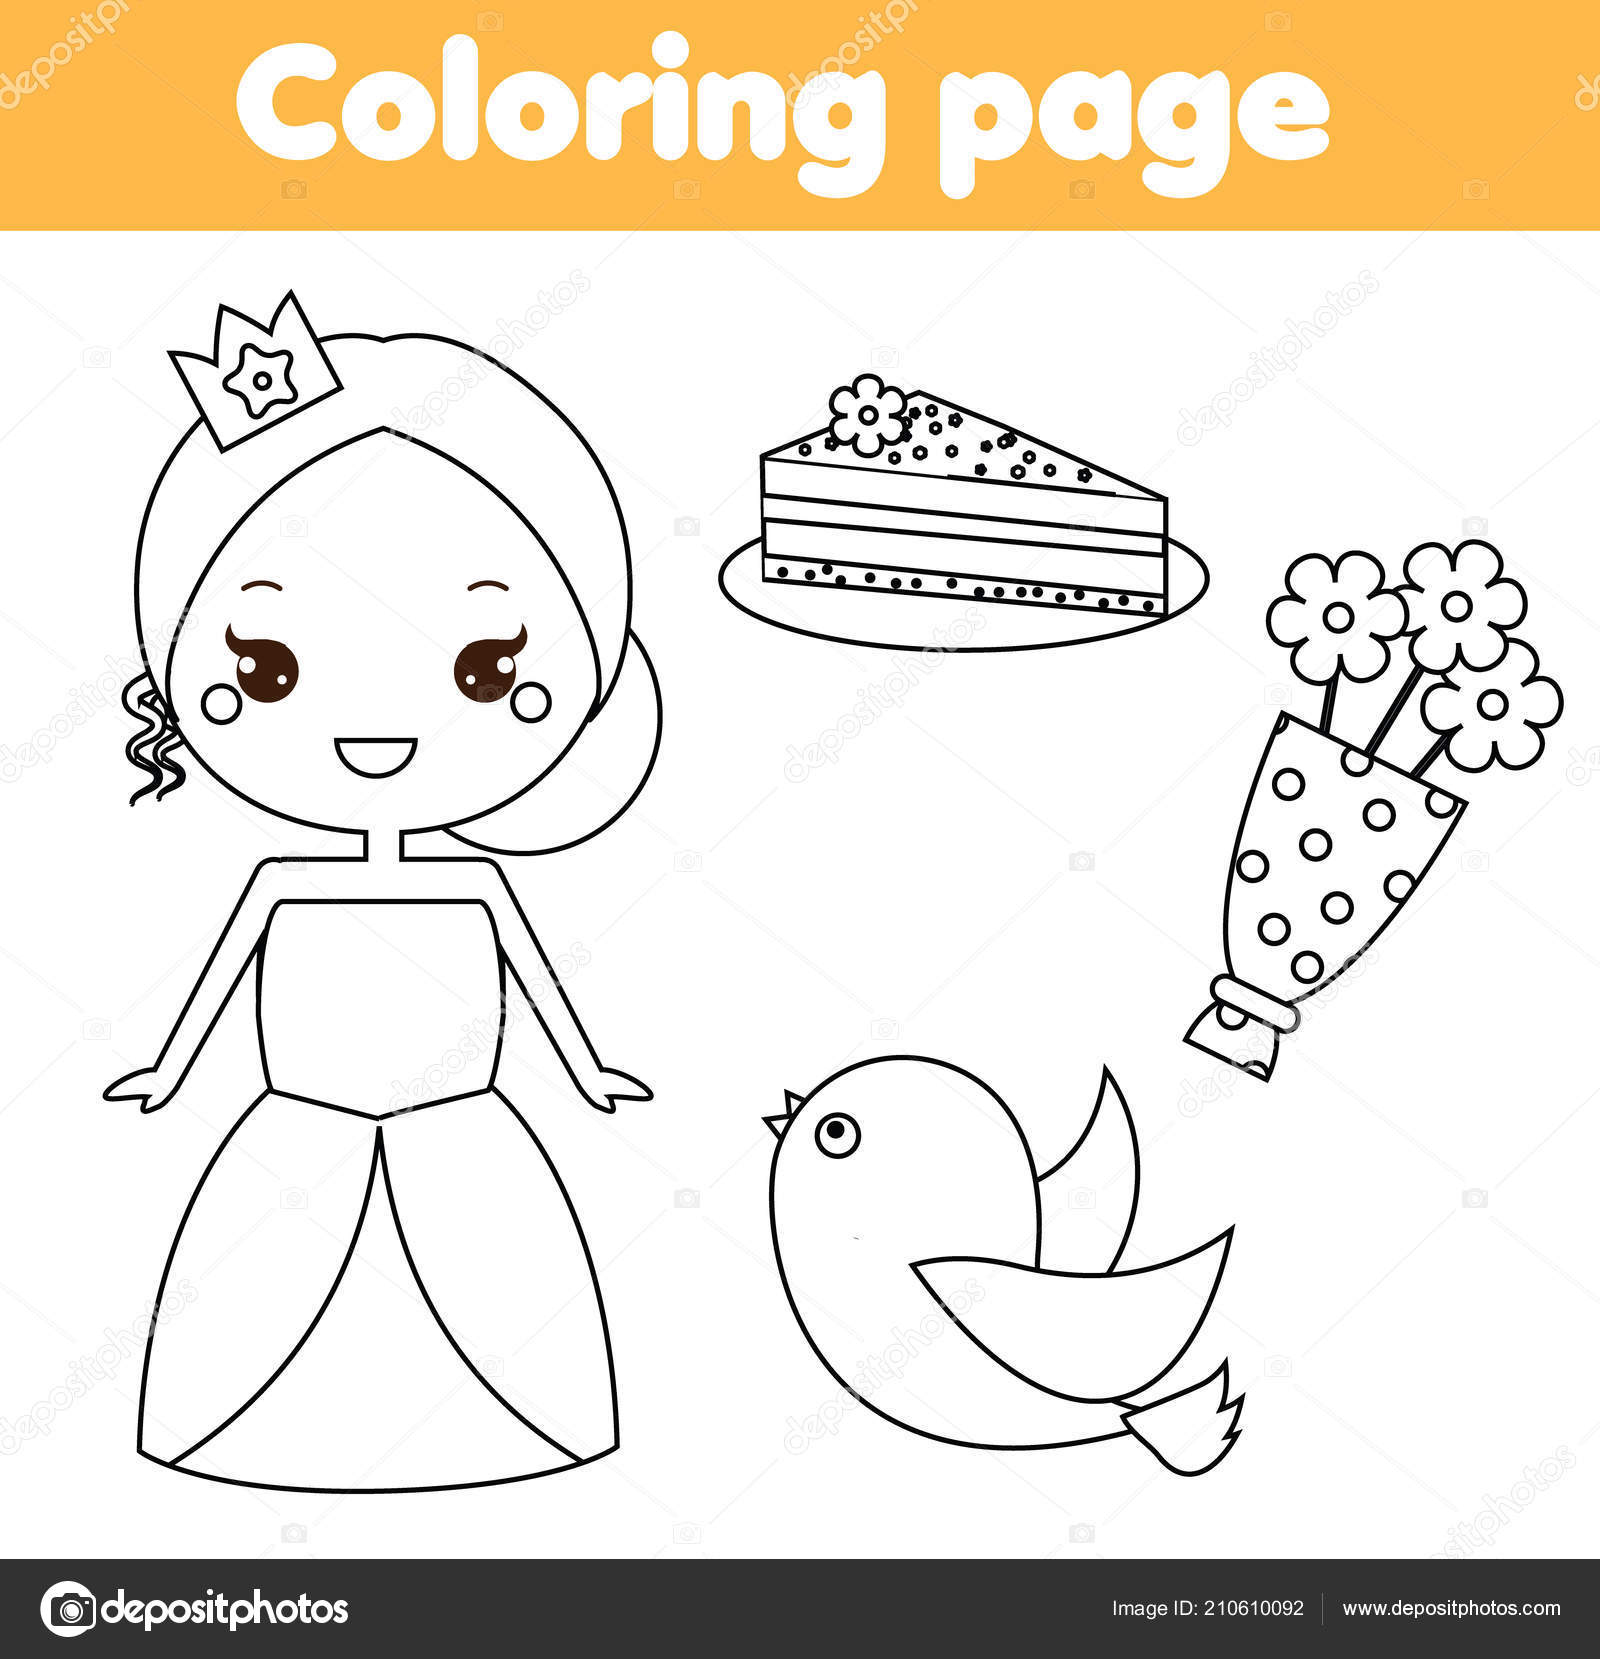 Coloring Page Educational Children Game Cute Princess Cake Bird